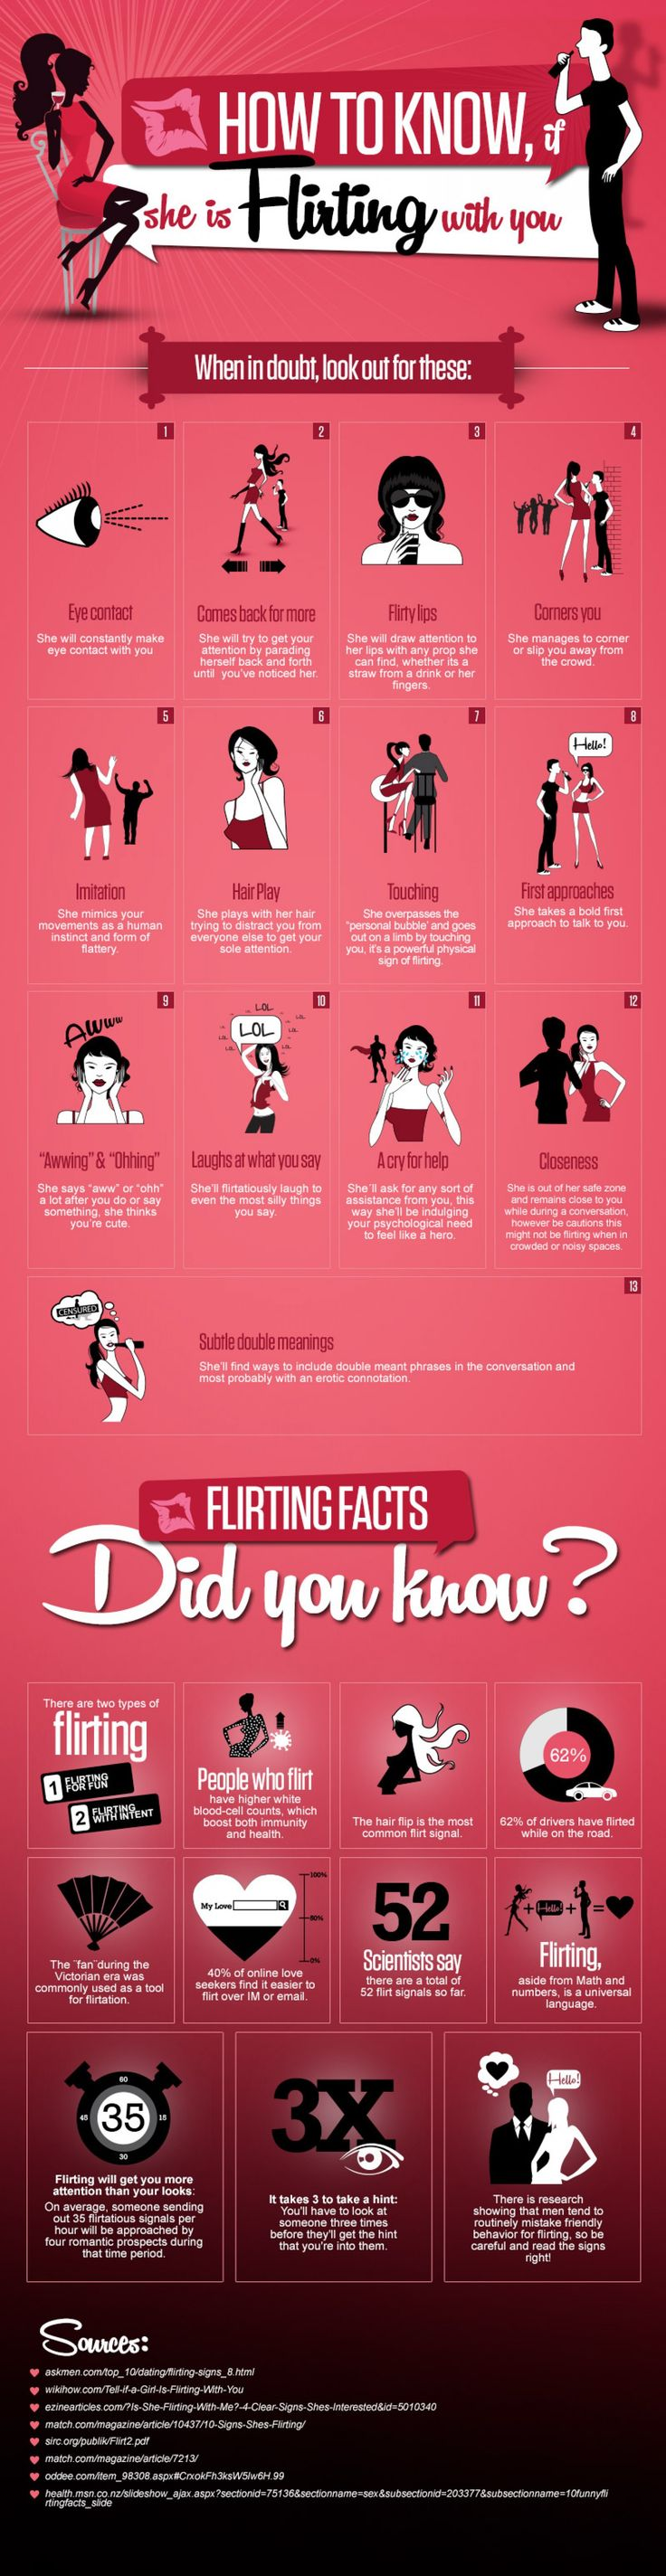 How to Know if She's Flirting with You.... interesting, but I would have been oblivious to all these signs anyway